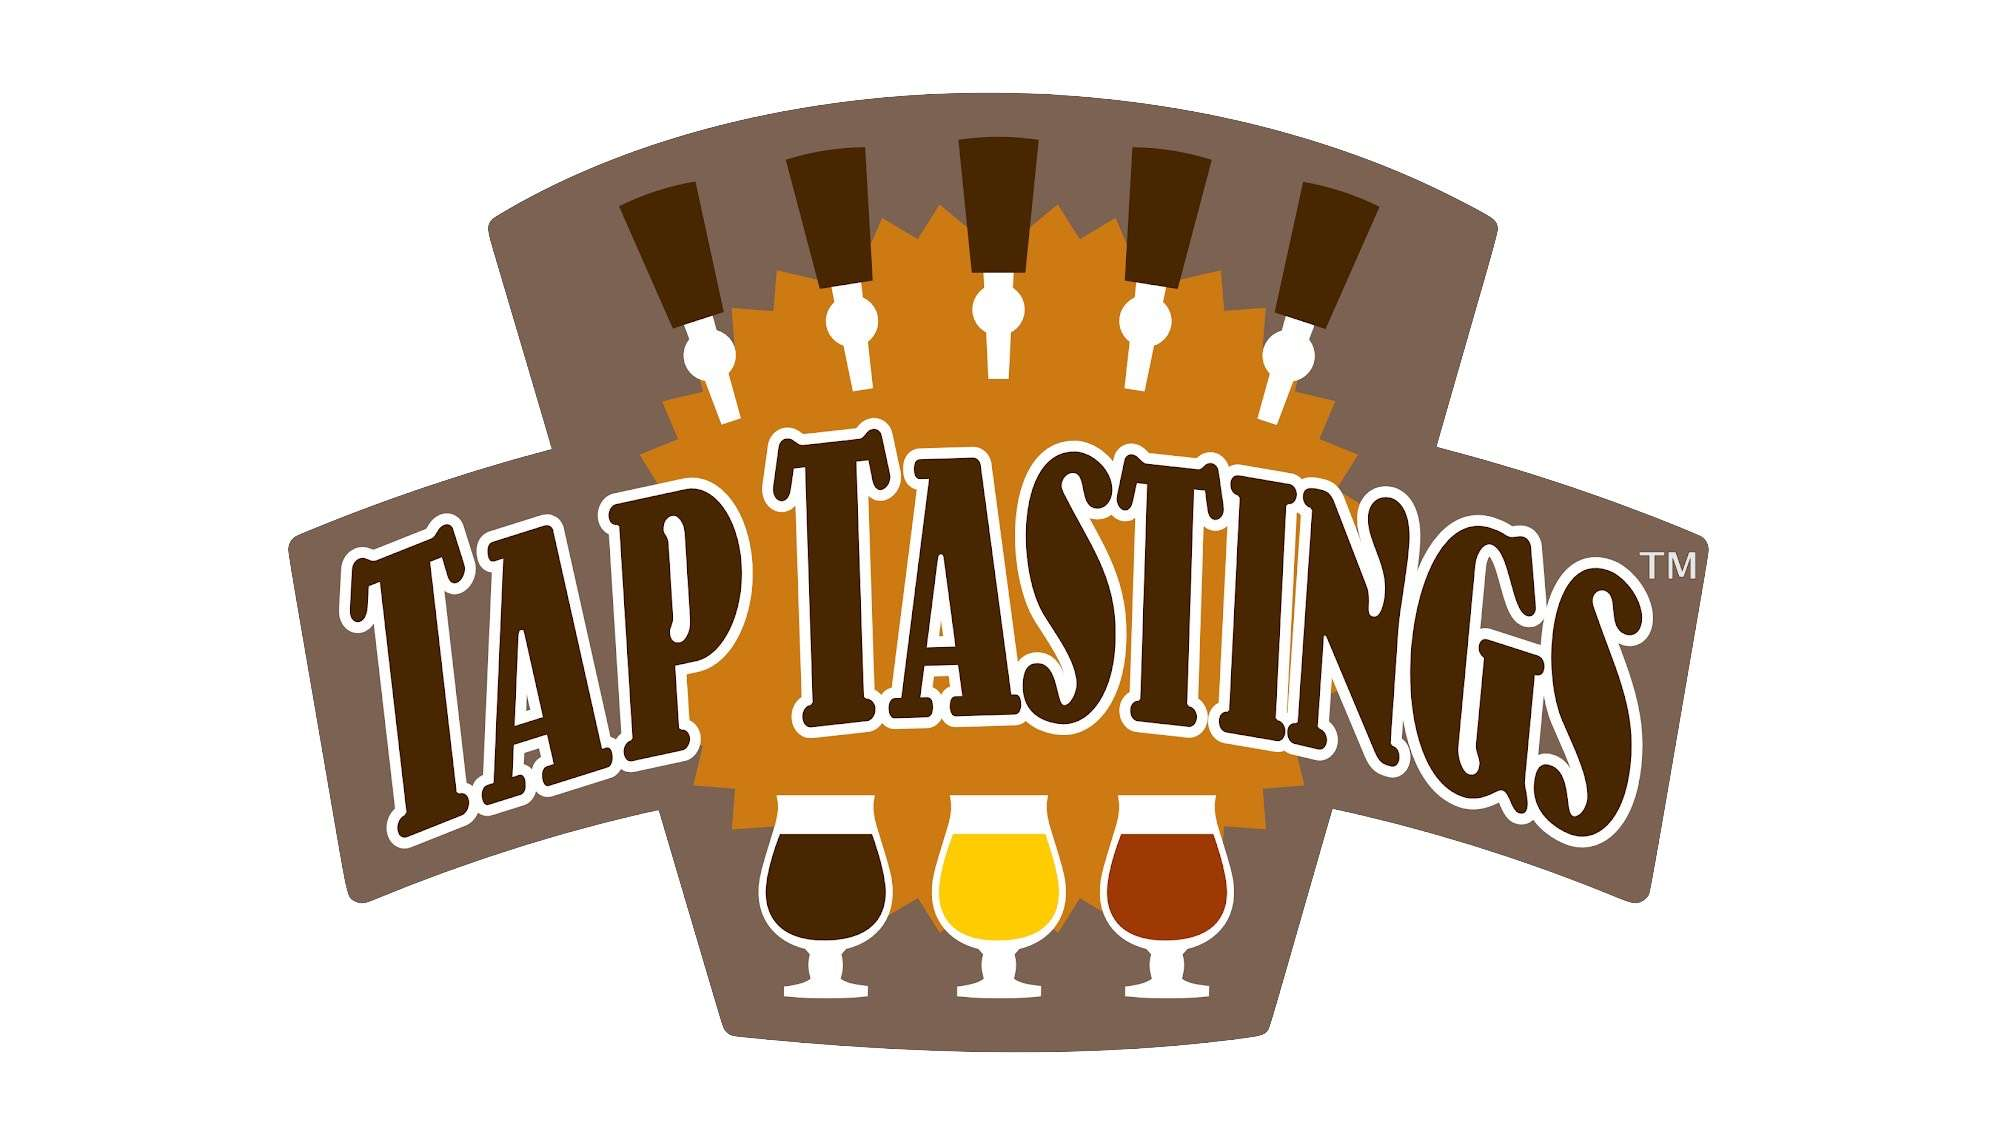 logo for Tap Tastings Craft Brew Excursions